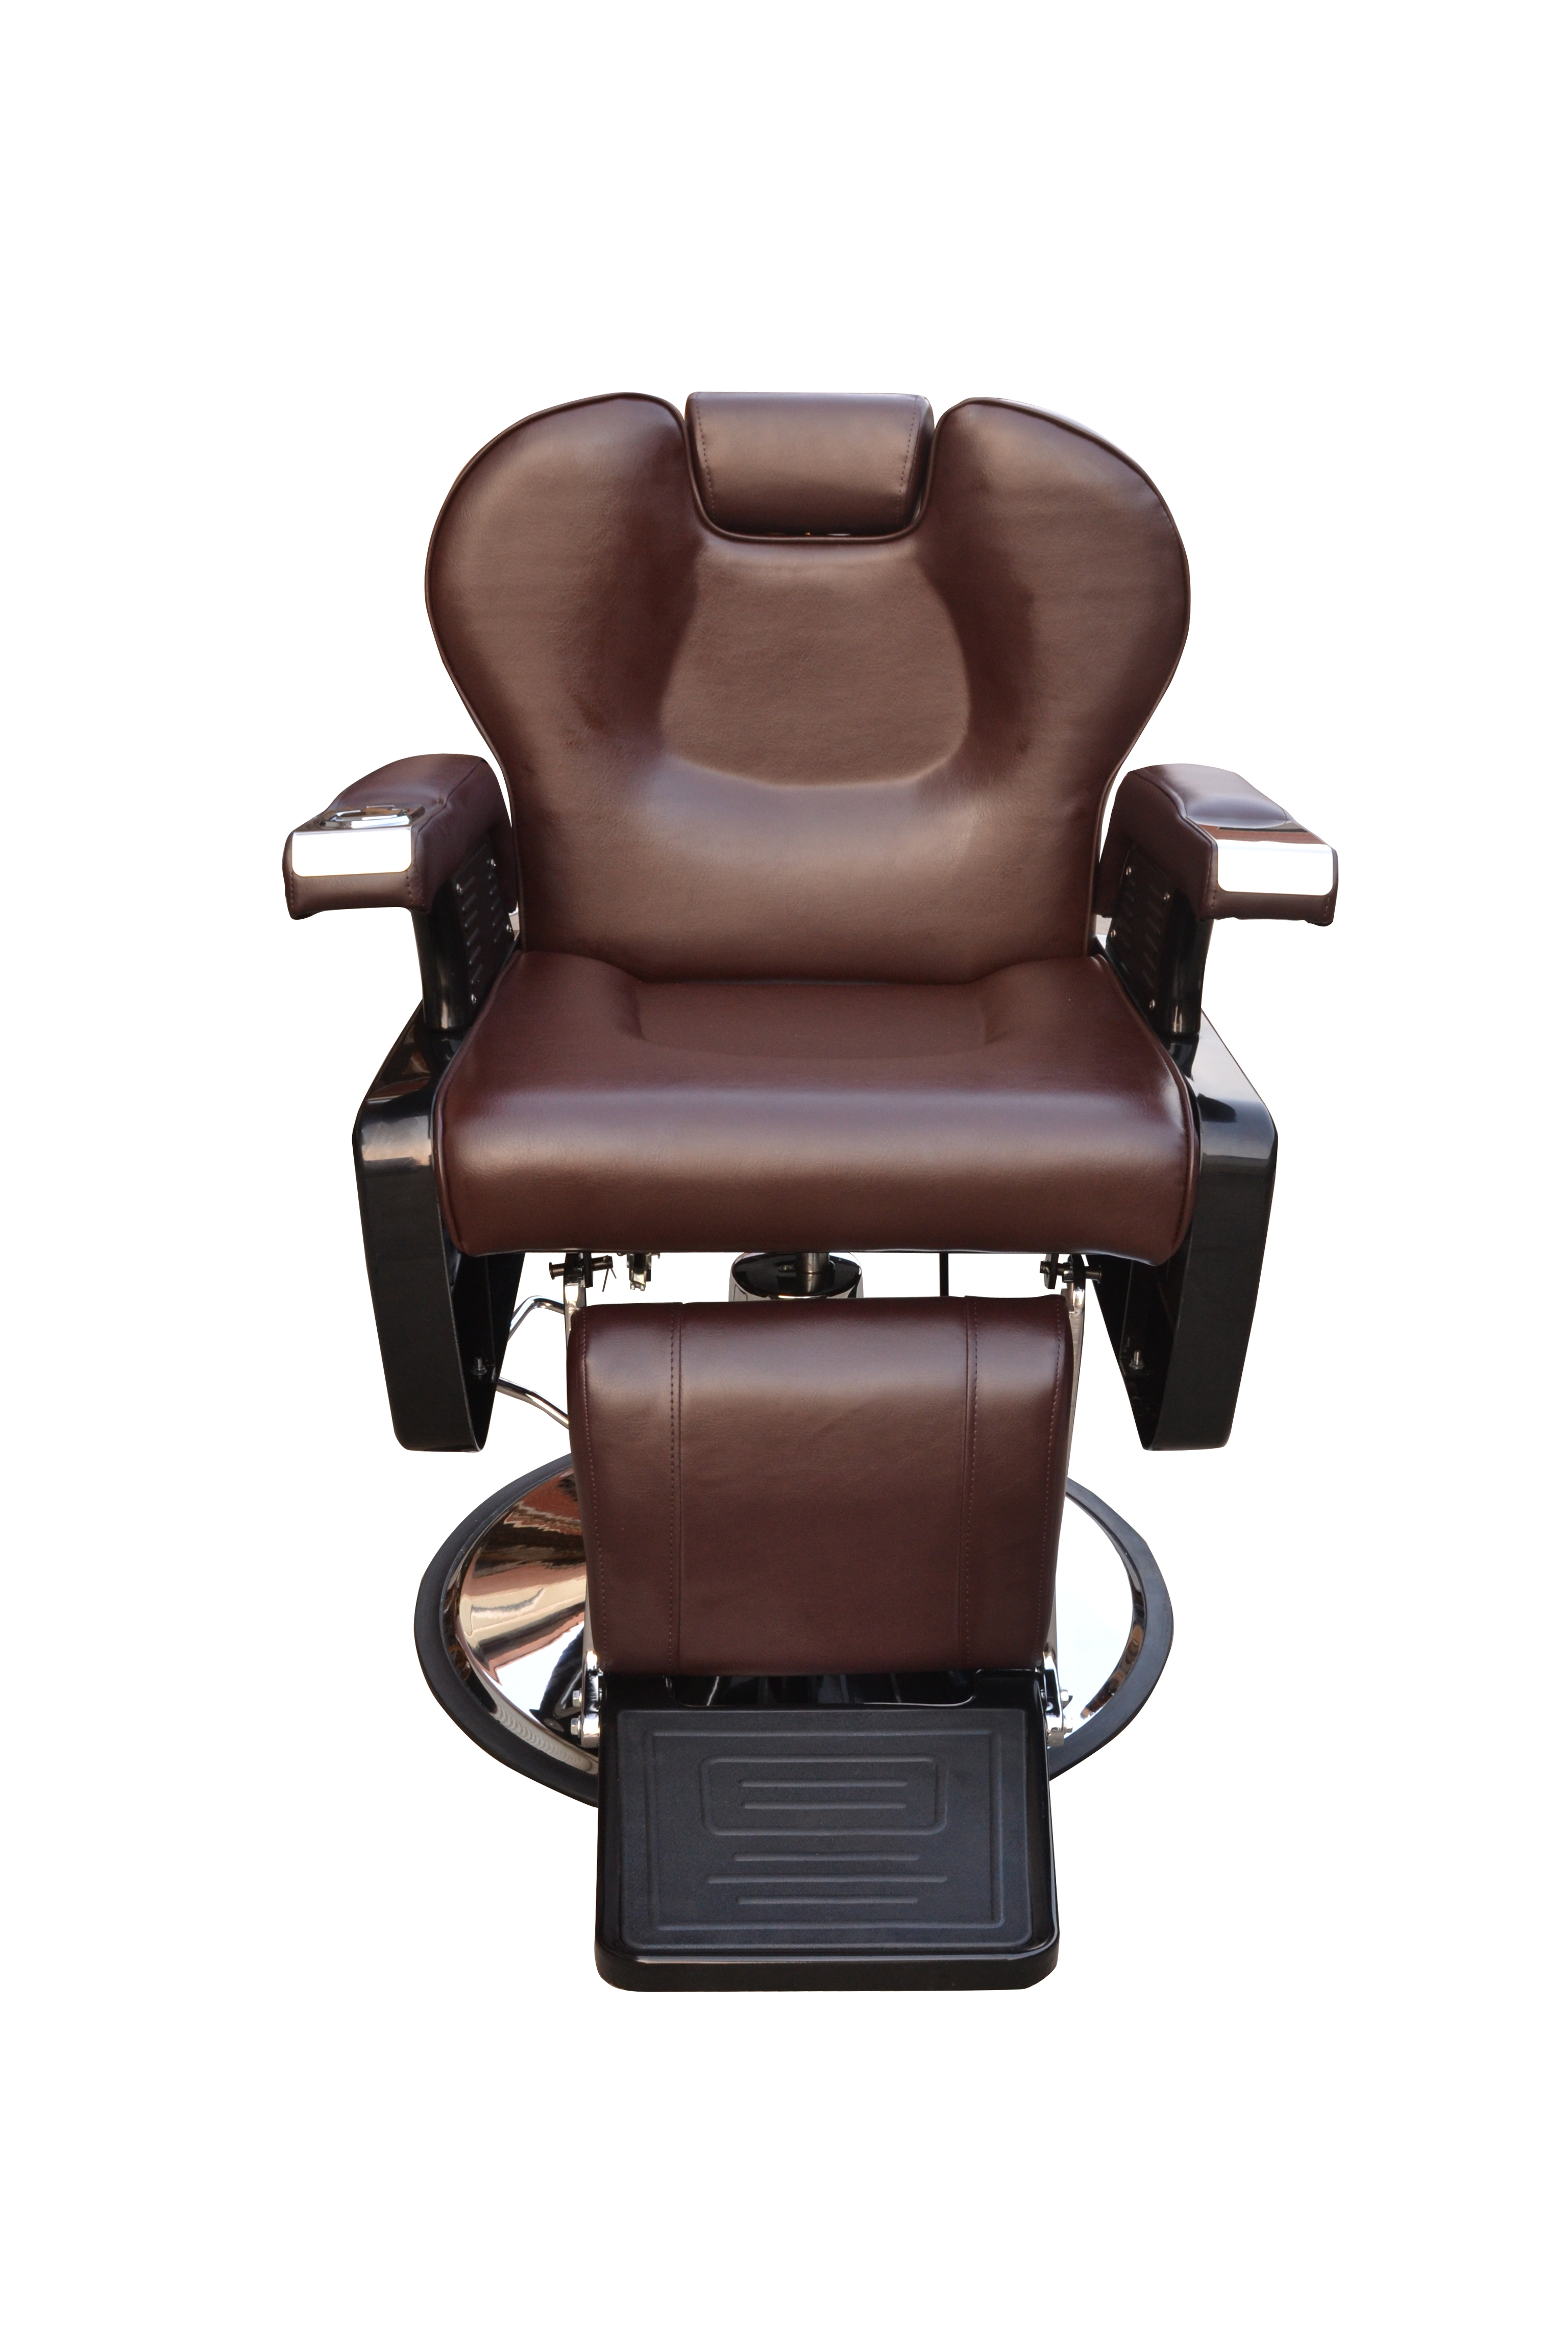 BarberPub All Purpose Hydraulic Recline Barber Chair Salon Beauty Spa 8702 Brown 18